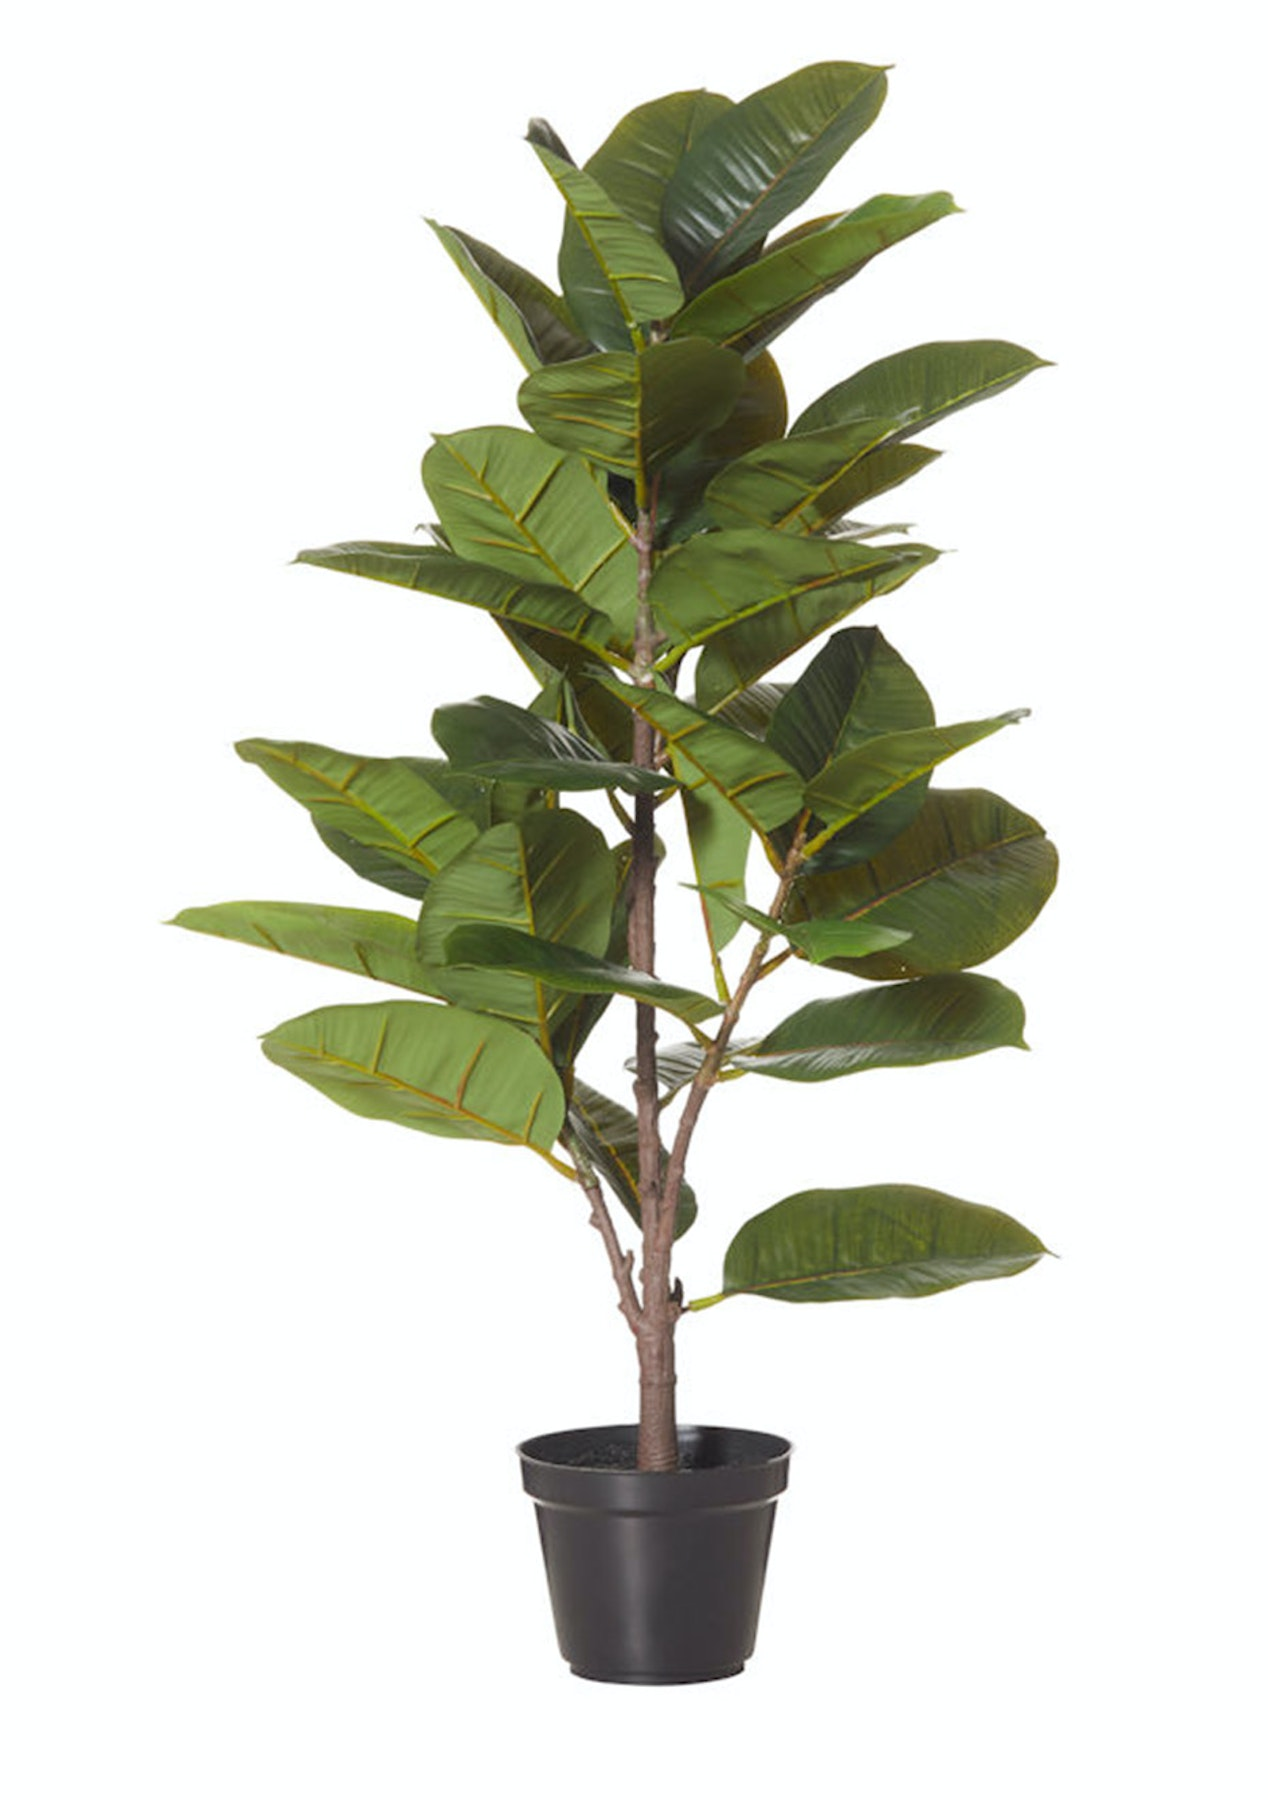 Albi - Rubber Plant-Garden Pot - 40x40x70cm - Stylish Gifts for the Home -  Onceit